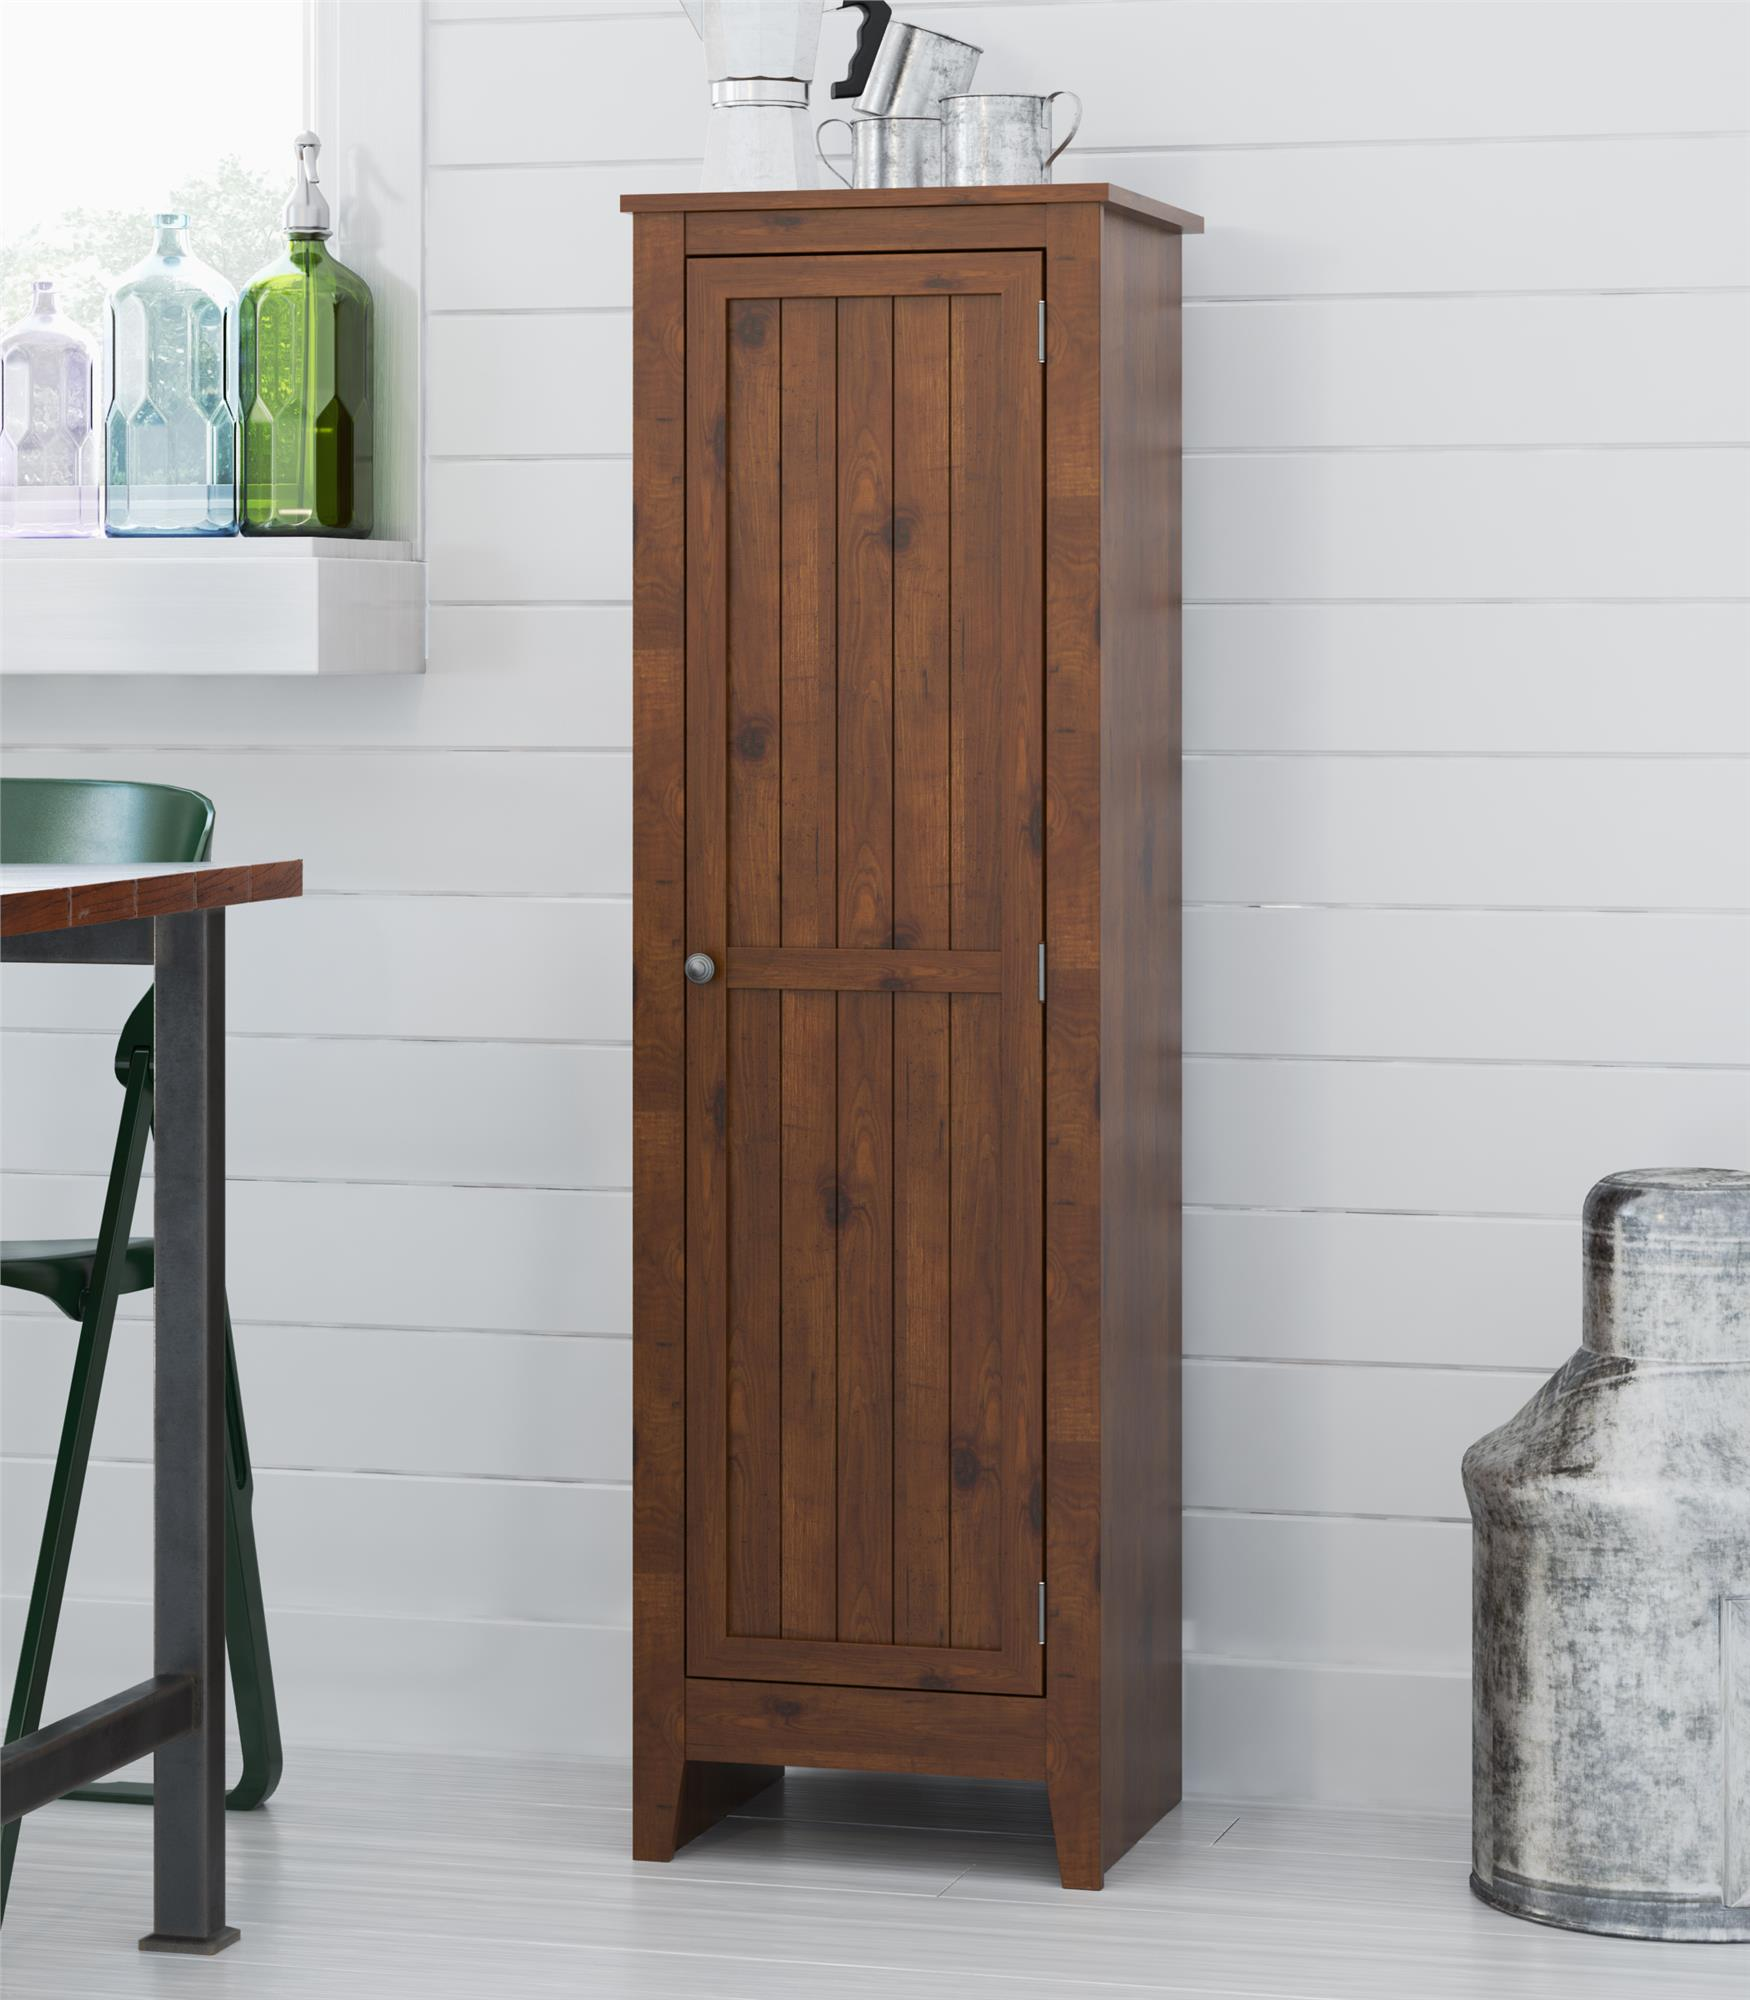 Ameriwood Home Milford Single Door Storage Pantry Cabinet Old Fashioned Pine  sc 1 st  Walmart & Ameriwood Home Milford Single Door Storage Pantry Cabinet Old ...